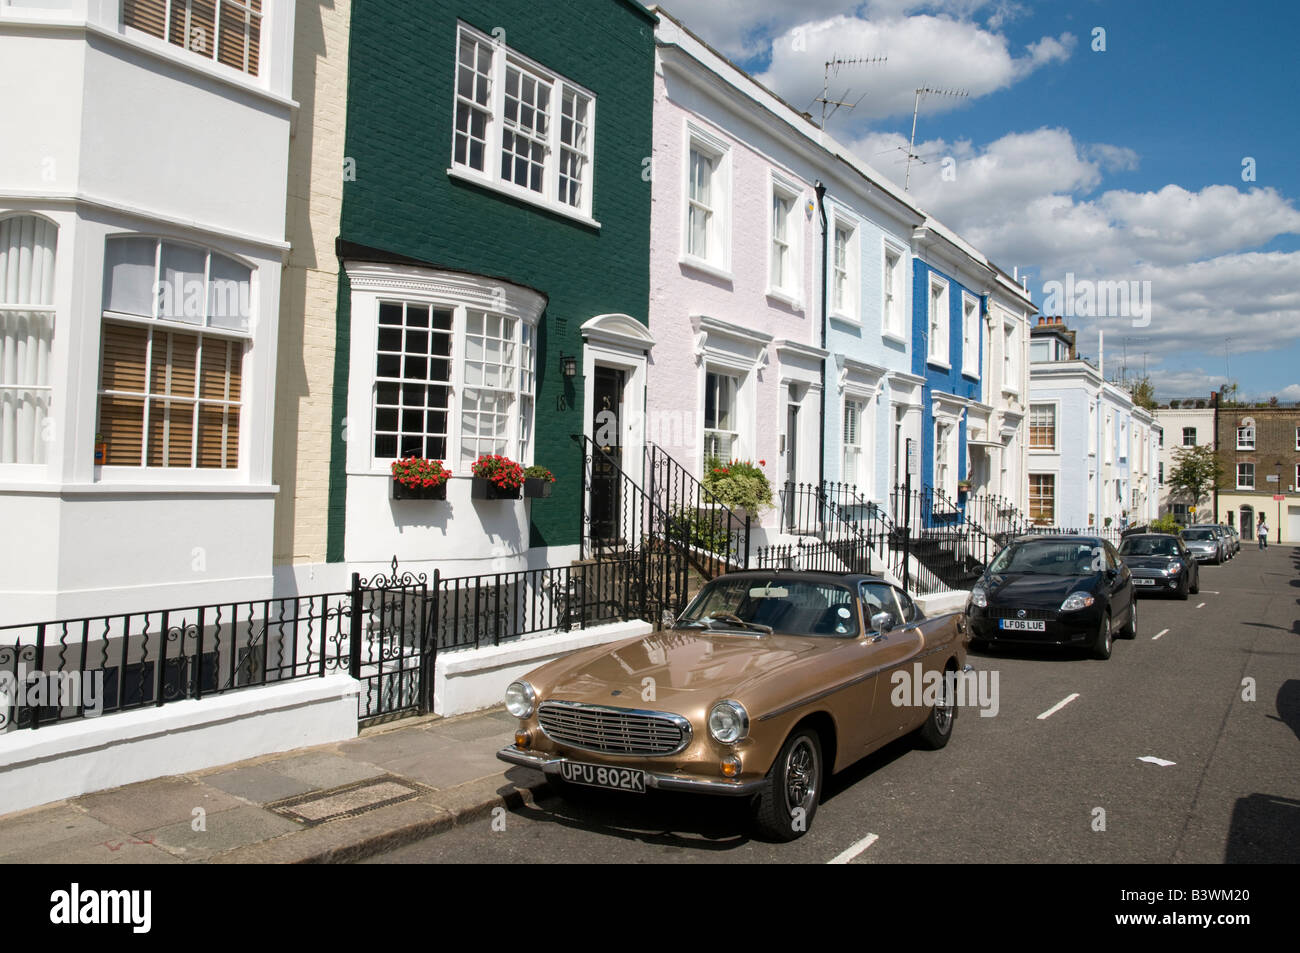 Row of expensive terraced houses in Hillgate Place, a residential street in Notting Hill, London England UK - Stock Image